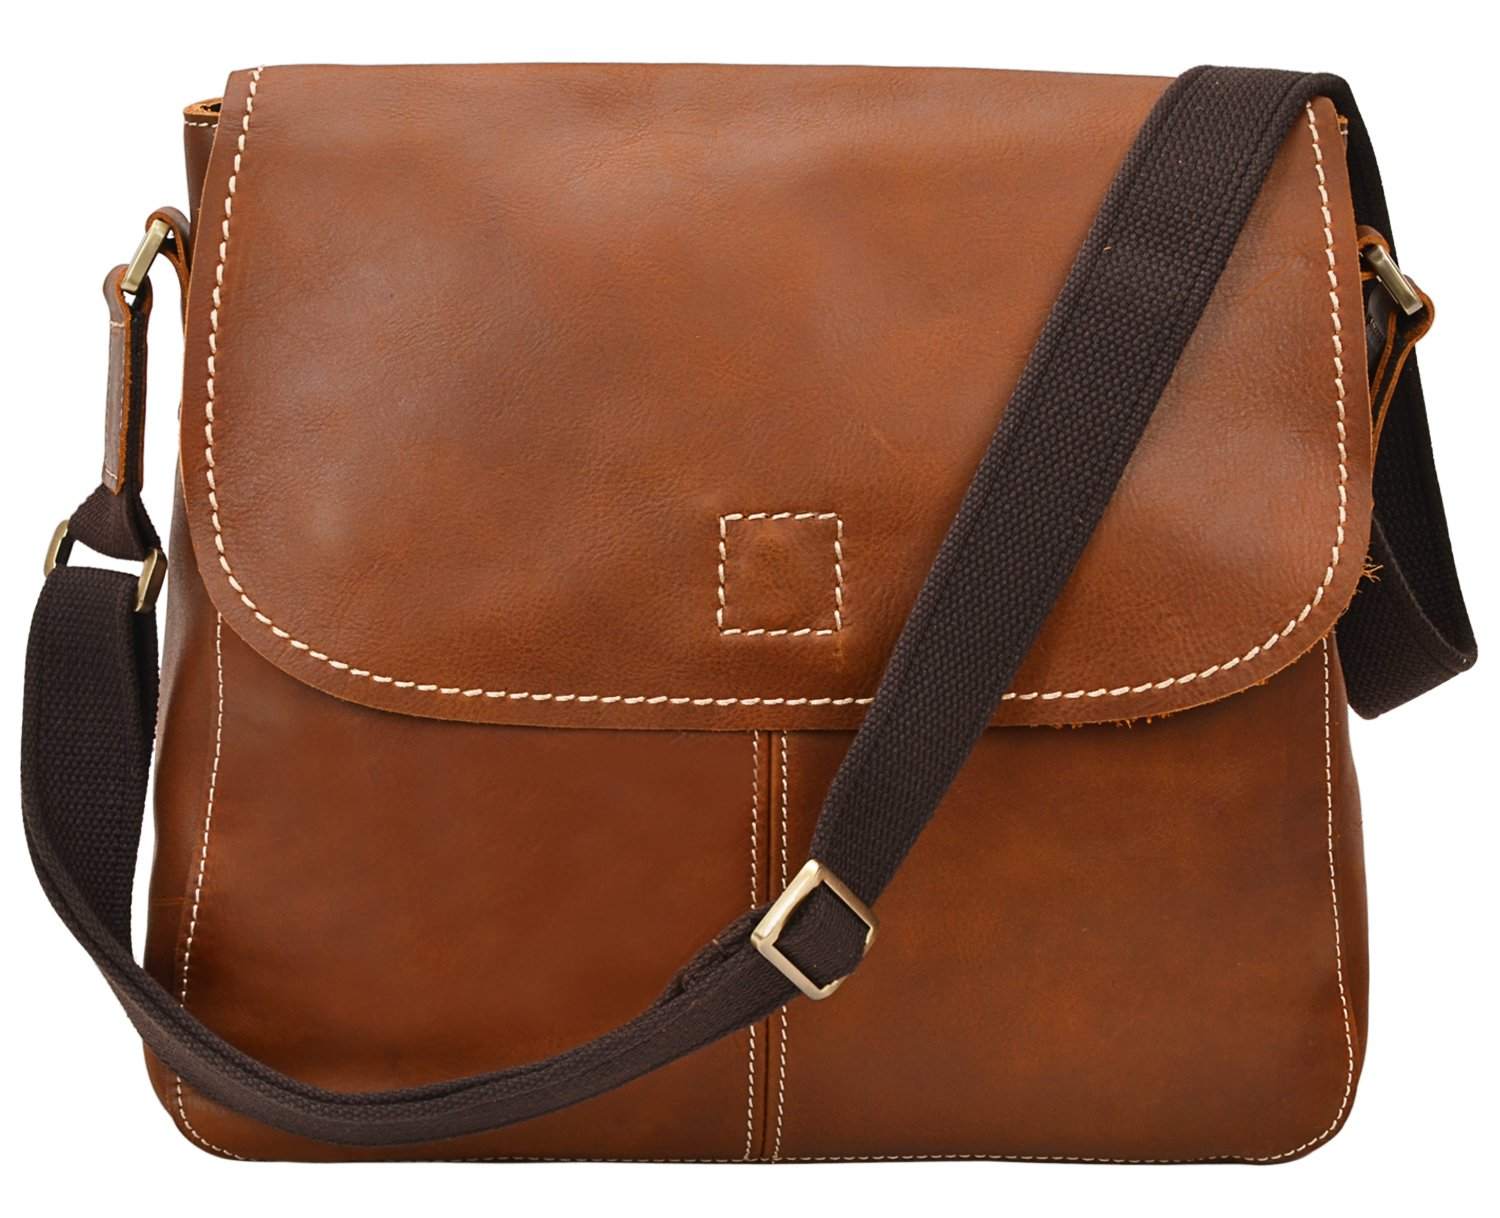 ALTOSY 15 Inch Genuine Leather Messenger Bag Satchel Bag for Office Work College School Business 8069 (light brown) by ALTOSY